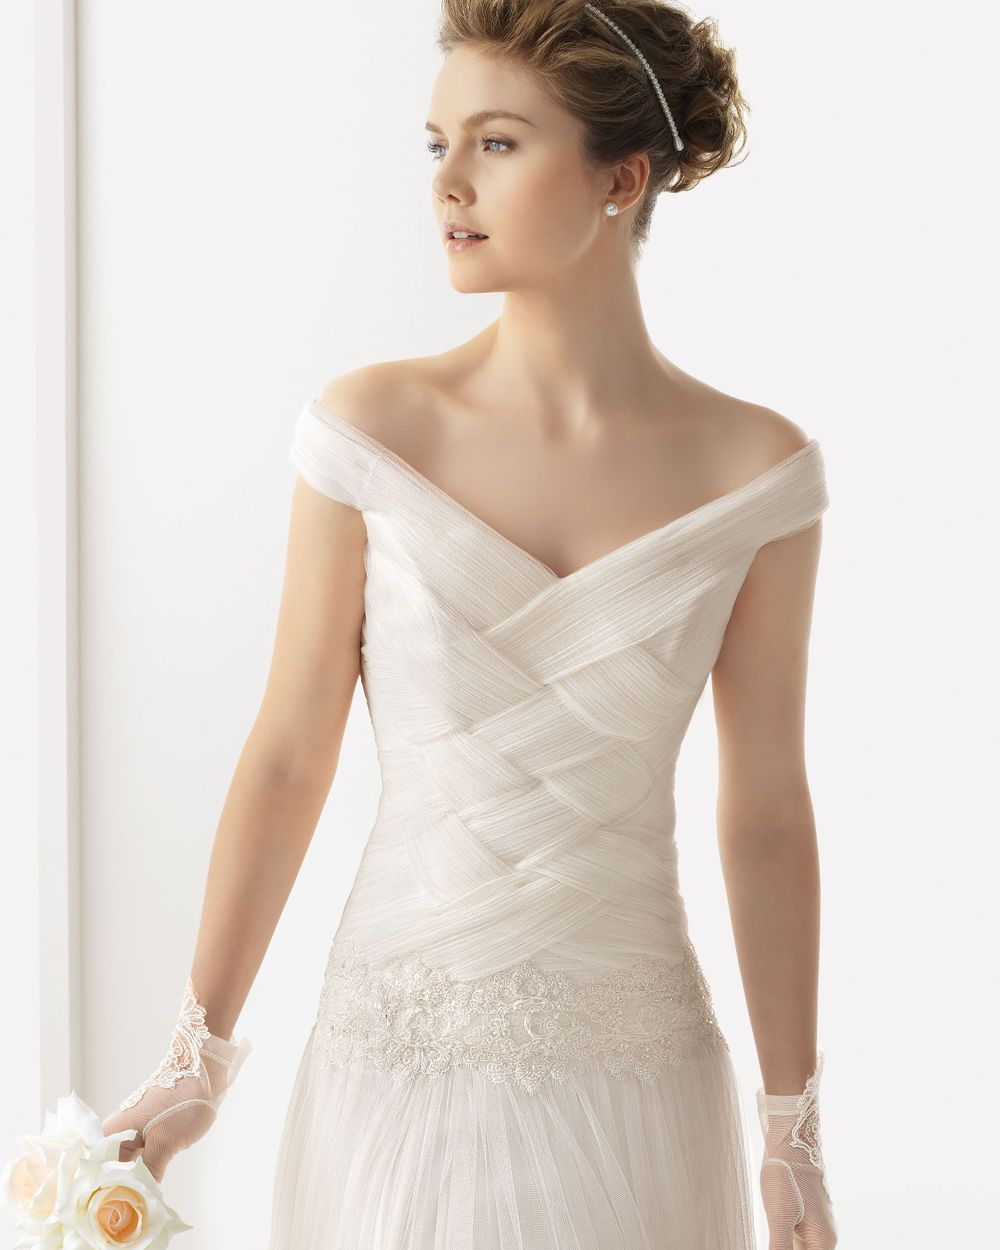 2014 Romantic A-line Off-The-Shoulder Tulle Wedding Dress